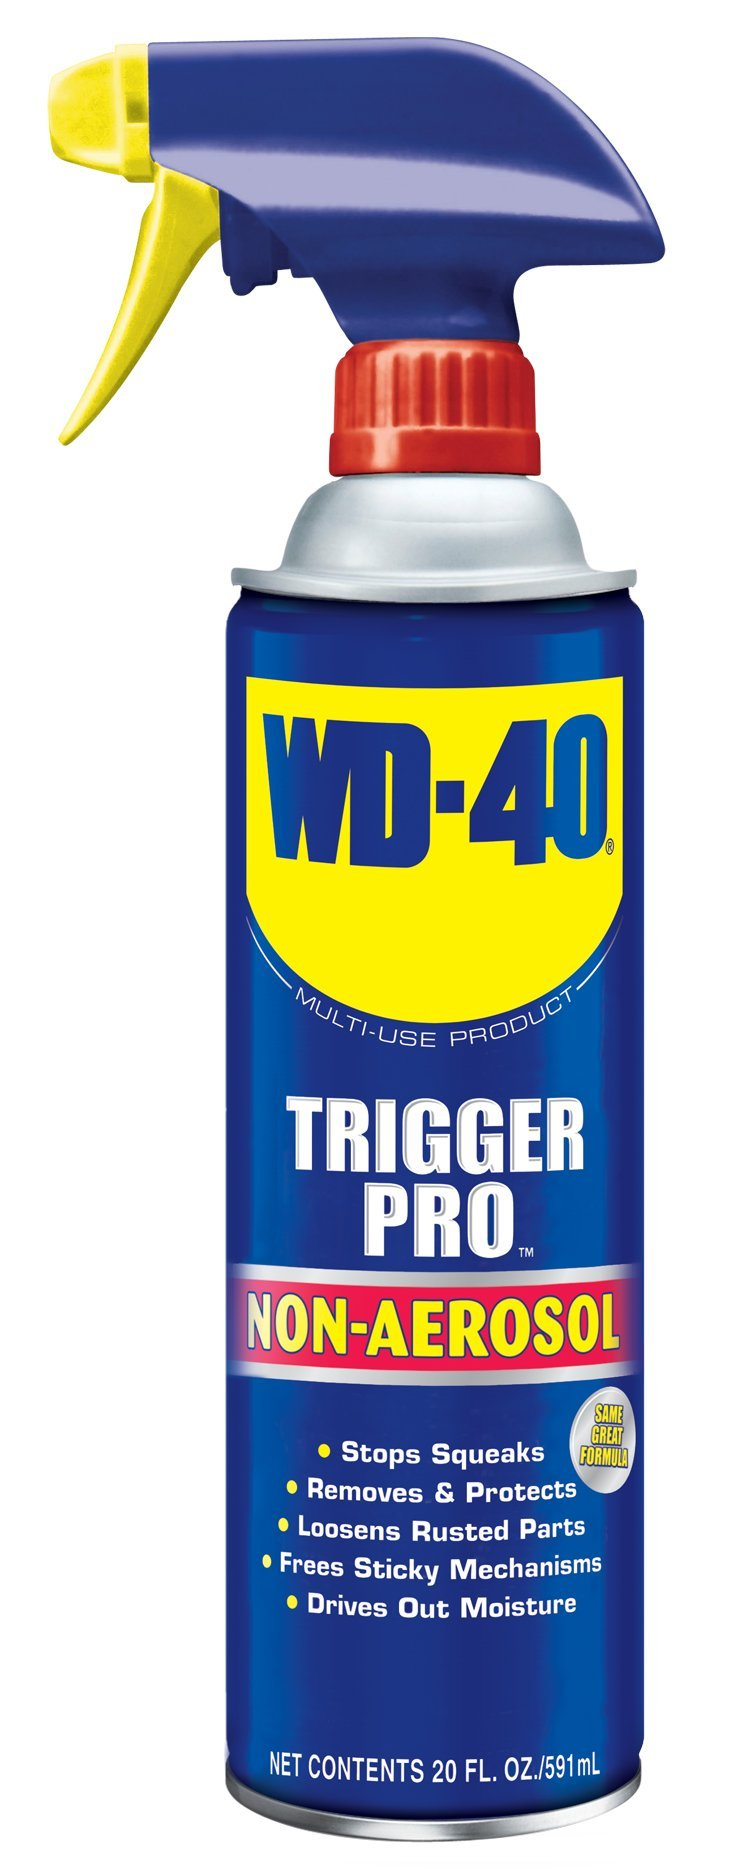 WD-40 Multi-Use Product - Multi-Purpose Lubricant with Non-Aerosol Trigger Pro Spray. 20 oz. (12 Pack) by WD-40